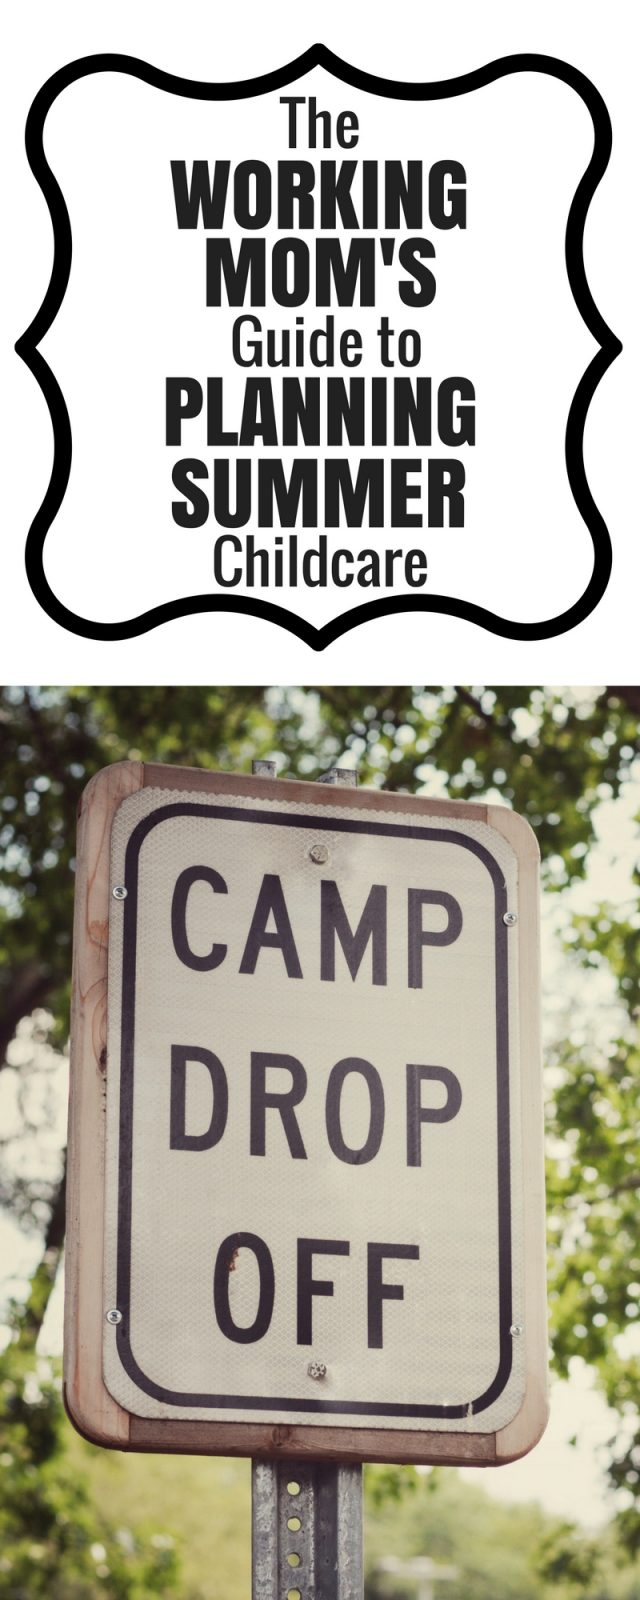 Ideas for working moms who need summer camps or childcare. #workingmom #childcare